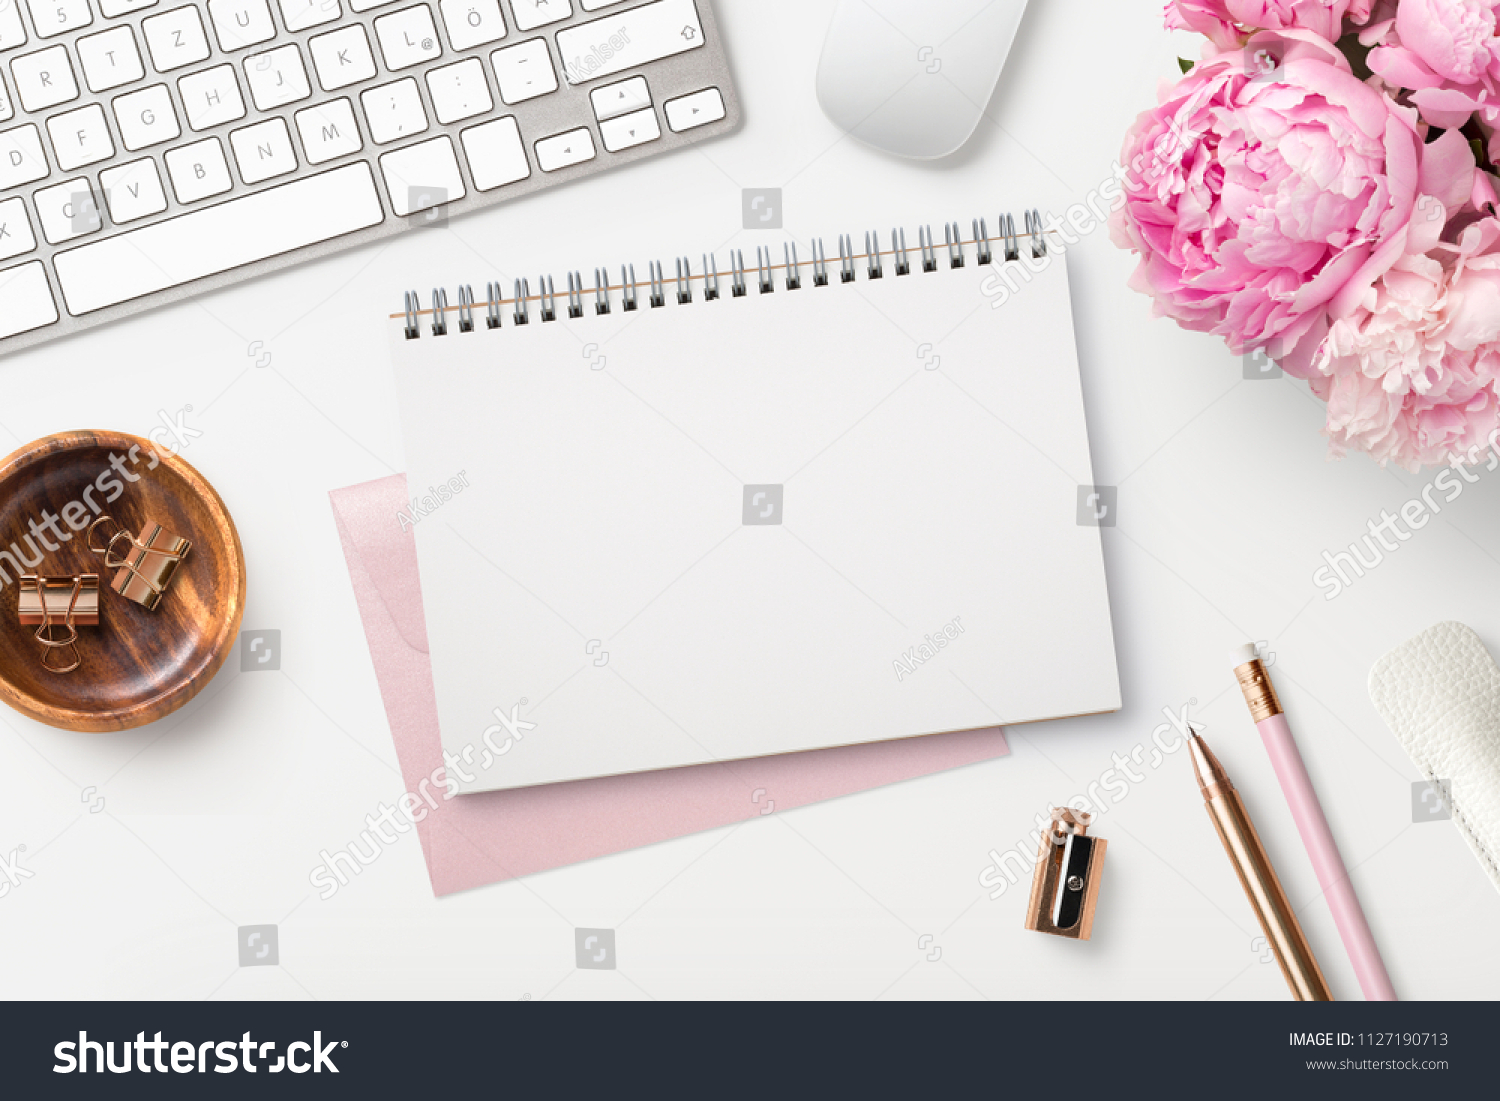 feminine workspace / desk with blank open notepad, keyboard, stylish office / writing supplies and pink peonies on a white background, top view #1127190713